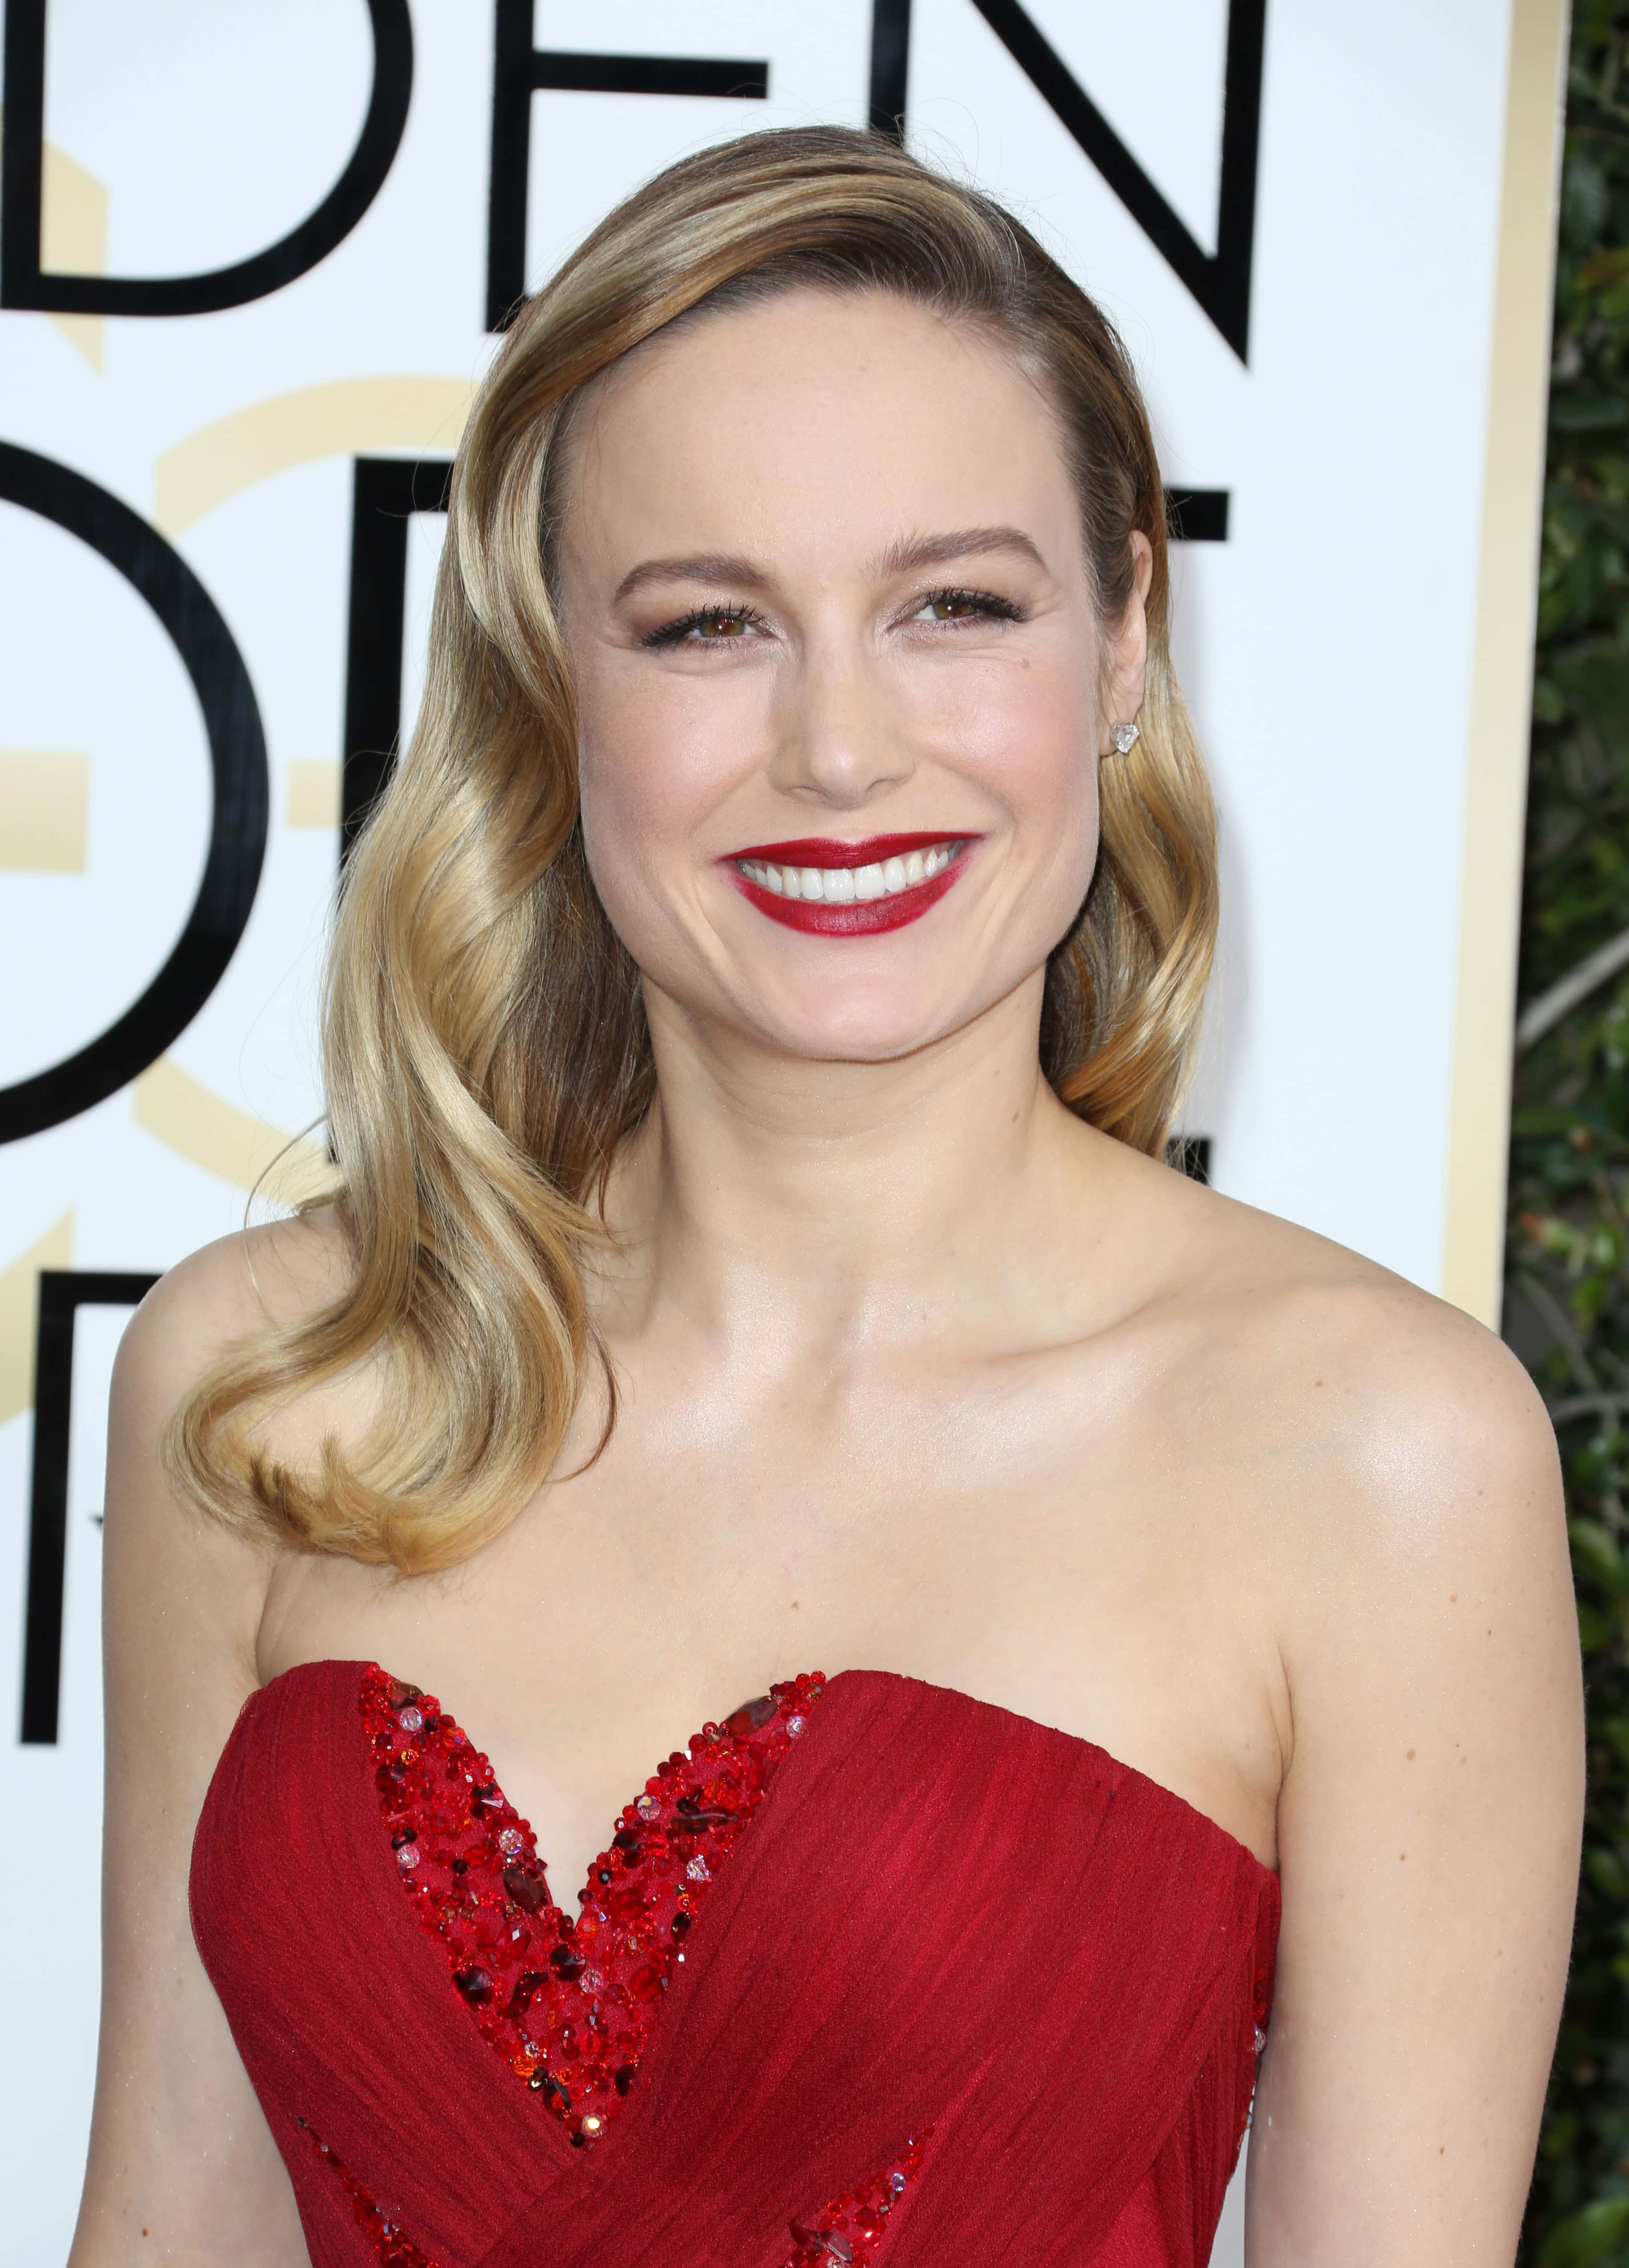 close up shot of Brie Larson with hollywood waves, wearing red dress and posing on the golden globes awards red carpet